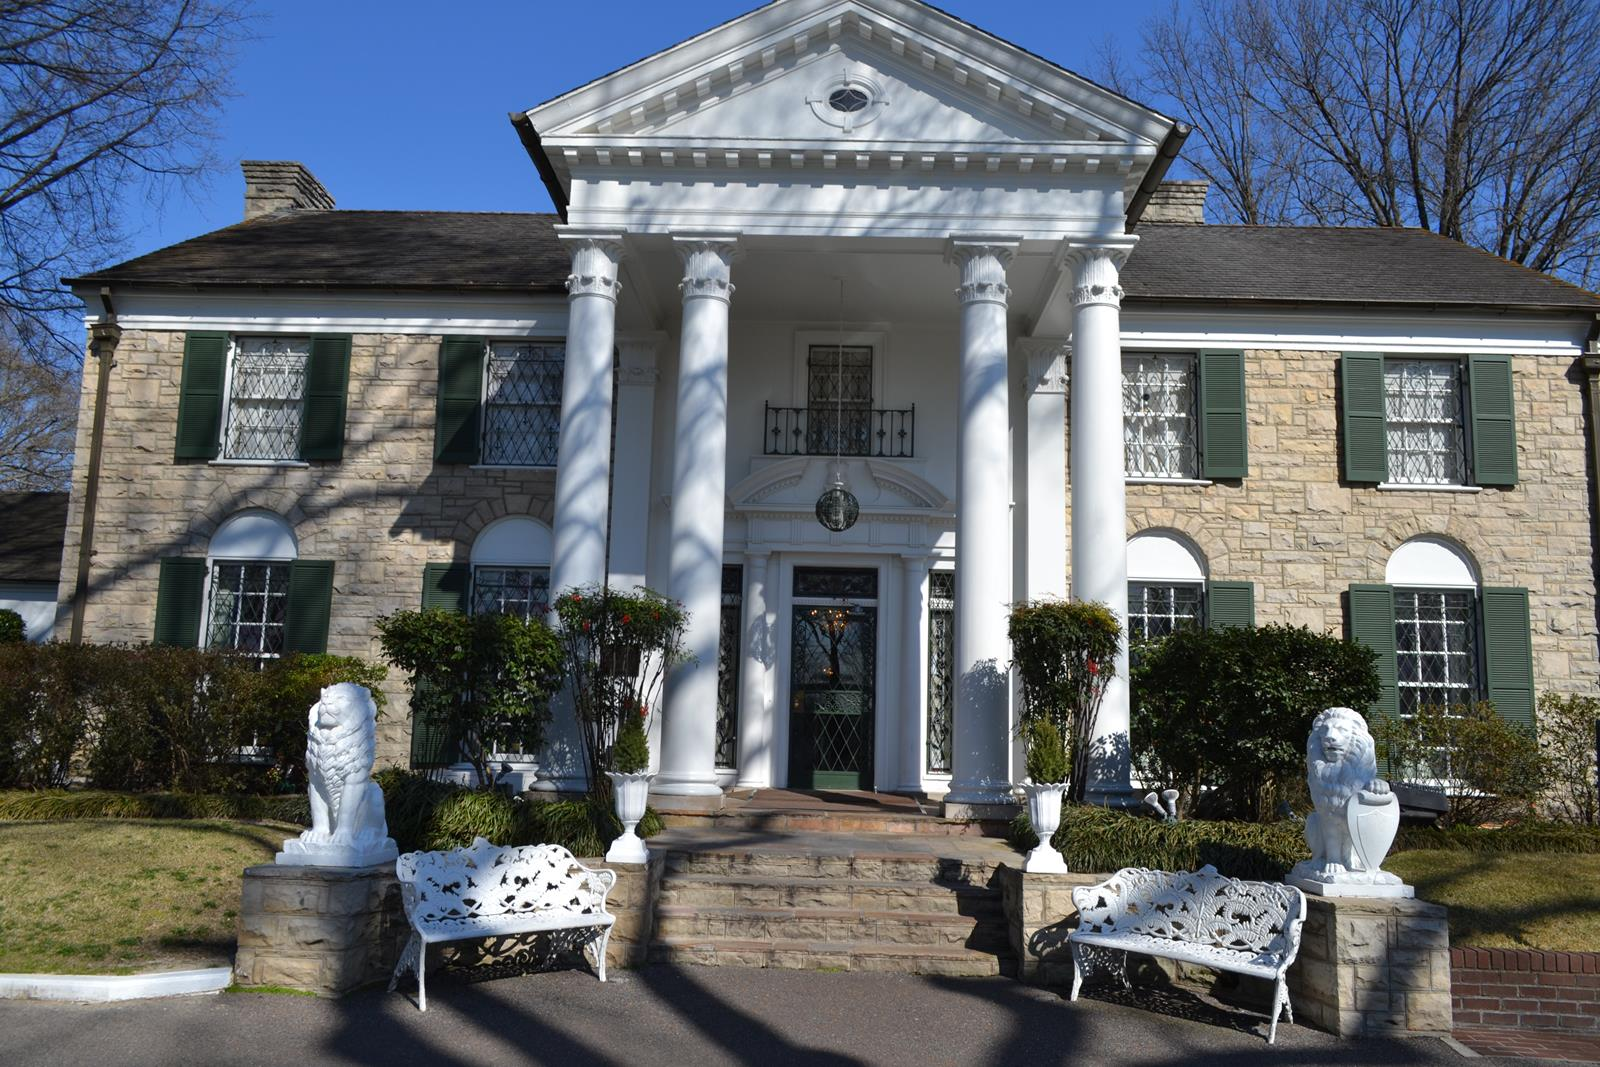 Elvis Presley's Graceland is a National Historic Landmark